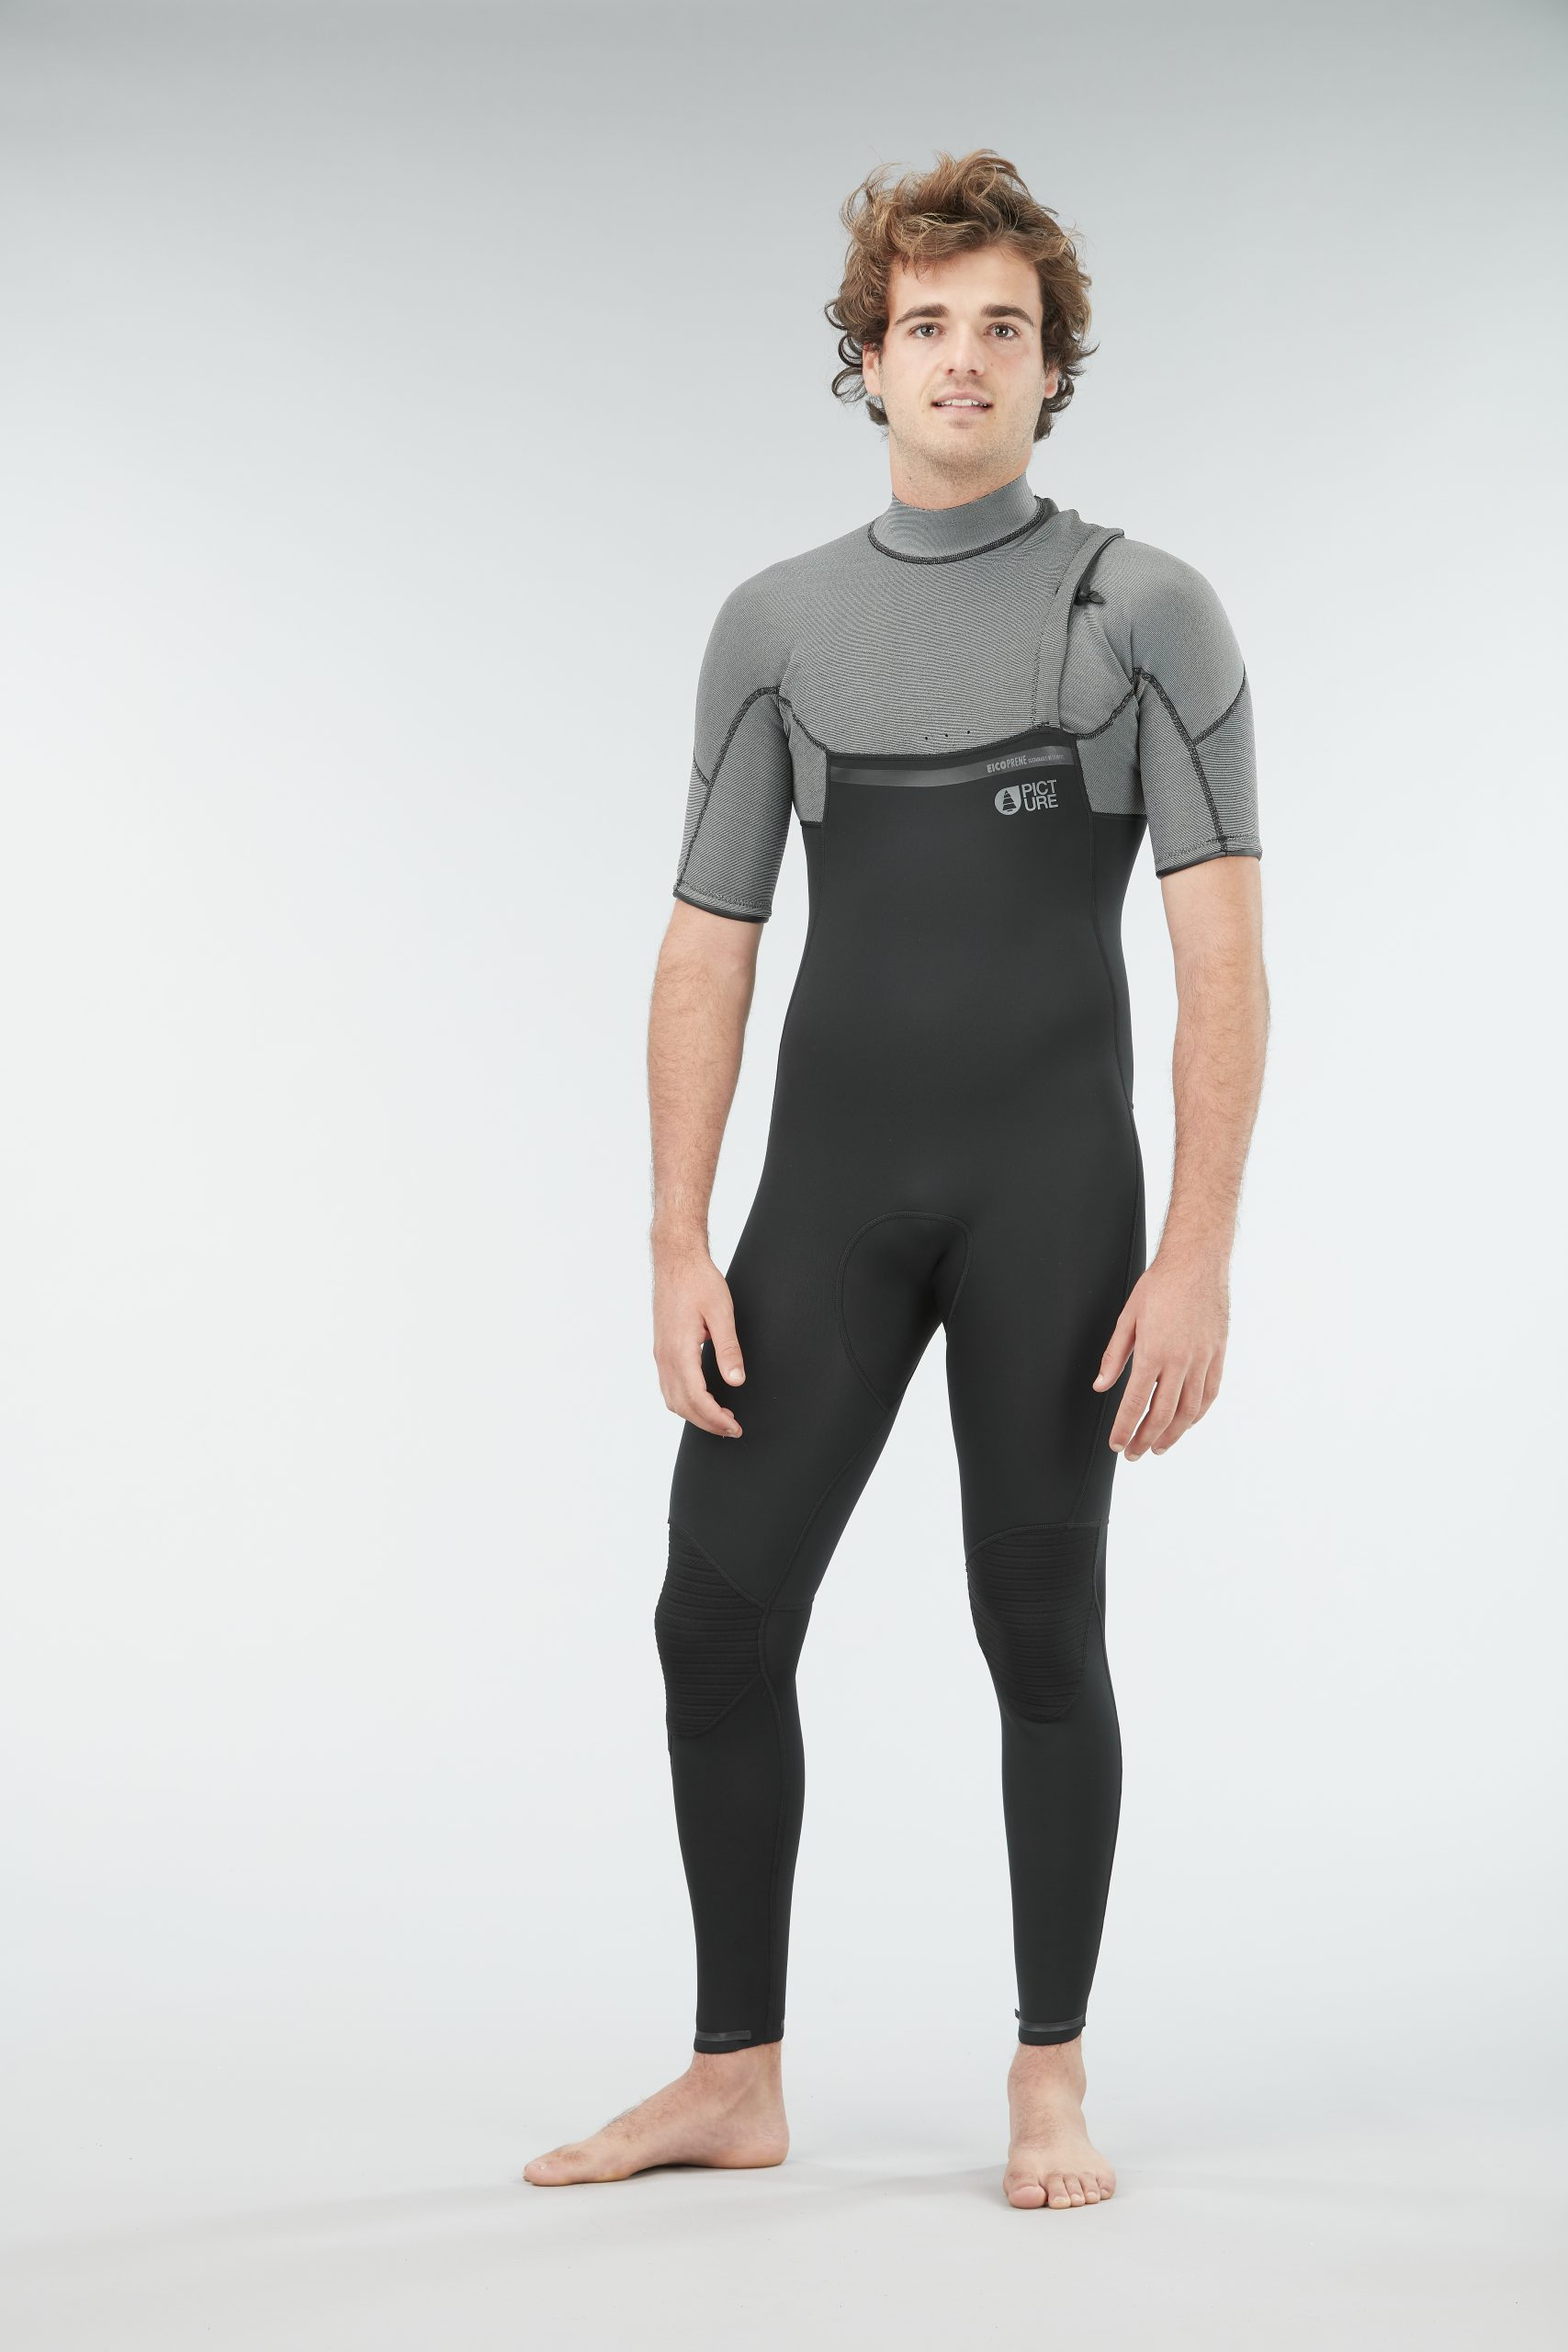 Picture SS21 Wetsuits